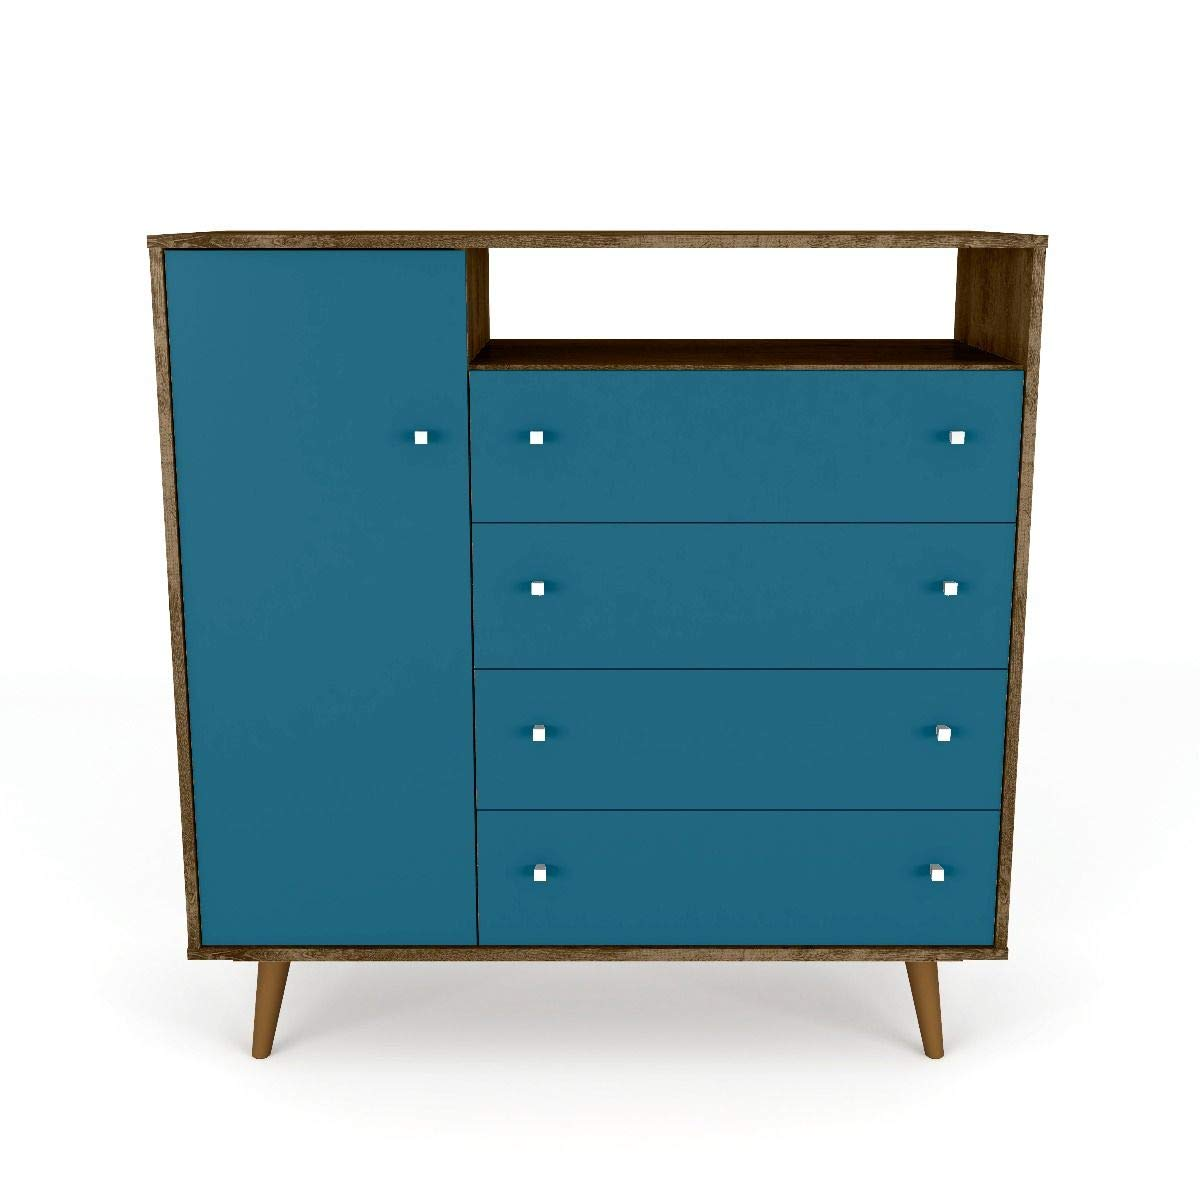 Mid Century Modern Sideboard Dresser Chest with 4 Drawers 4 Shelves 1 Door and Solid Wood Splayed Legs - Includes Modhaus Living Pen (Rustic Brown and Aqua Blue)